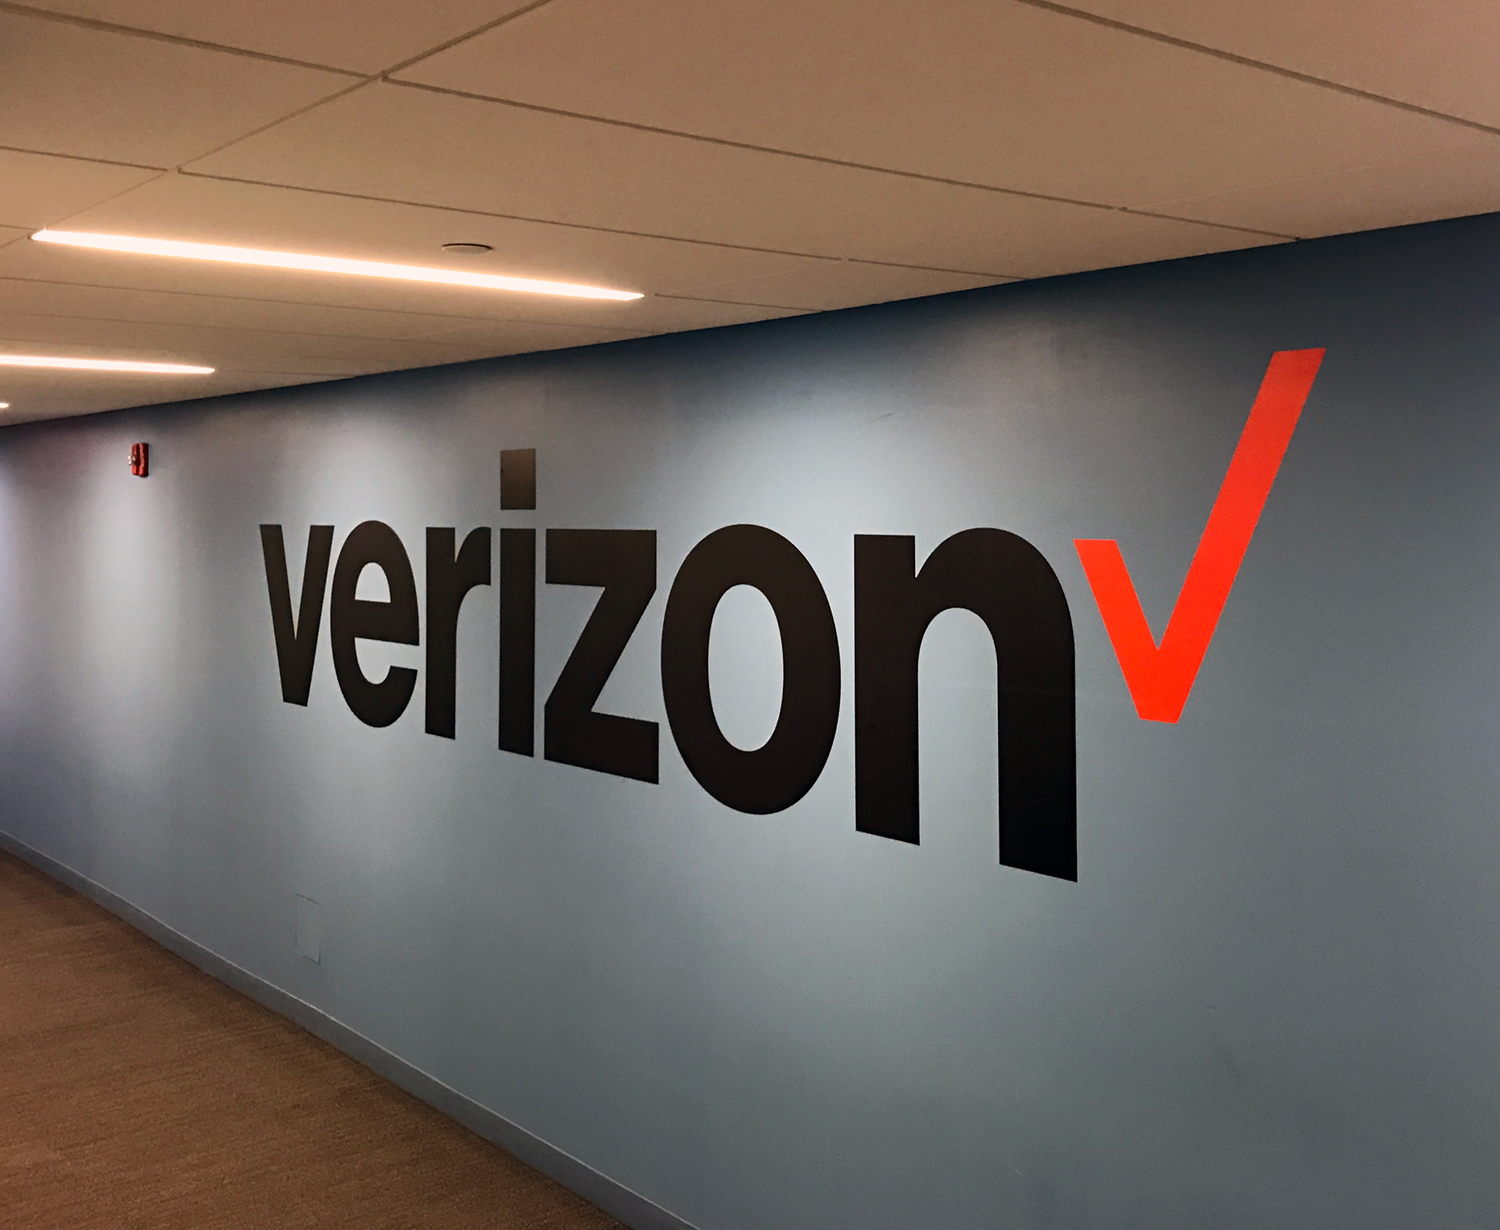 Verizon Wall Lettering